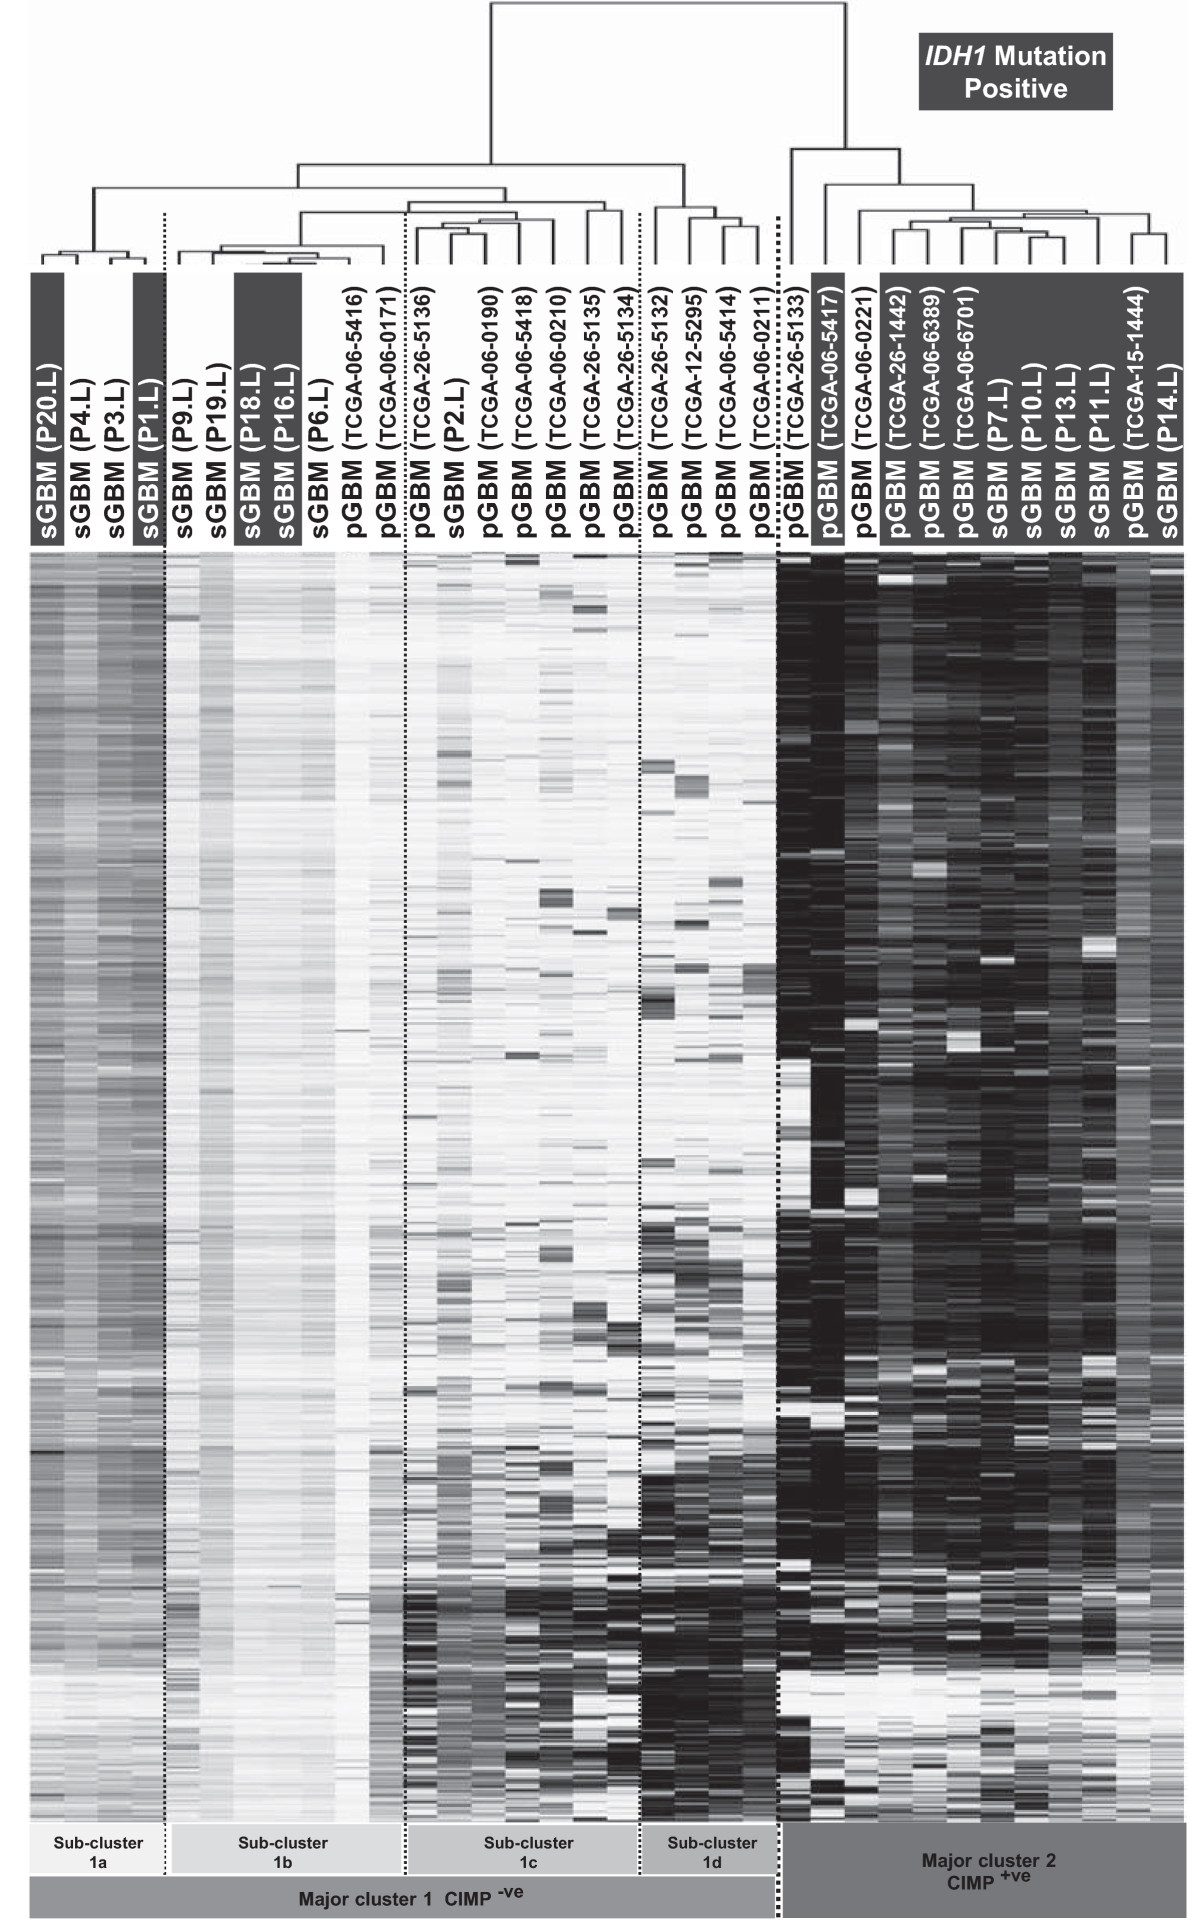 https://static-content.springer.com/image/art%3A10.1186%2F1471-2407-14-506/MediaObjects/12885_2013_Article_4692_Fig3_HTML.jpg